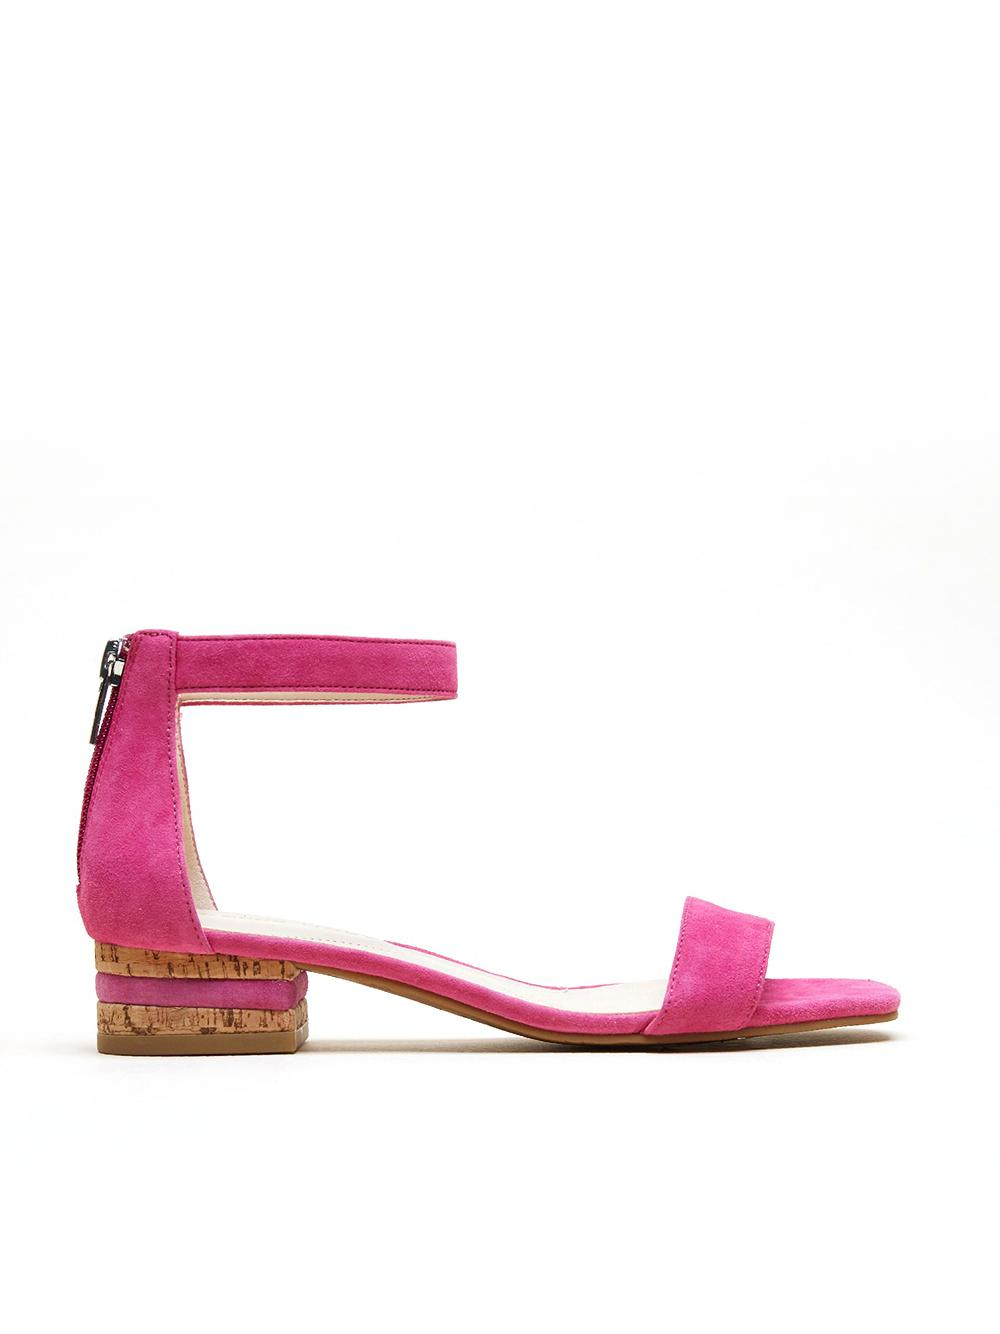 Suede Sandal With Cork Heel